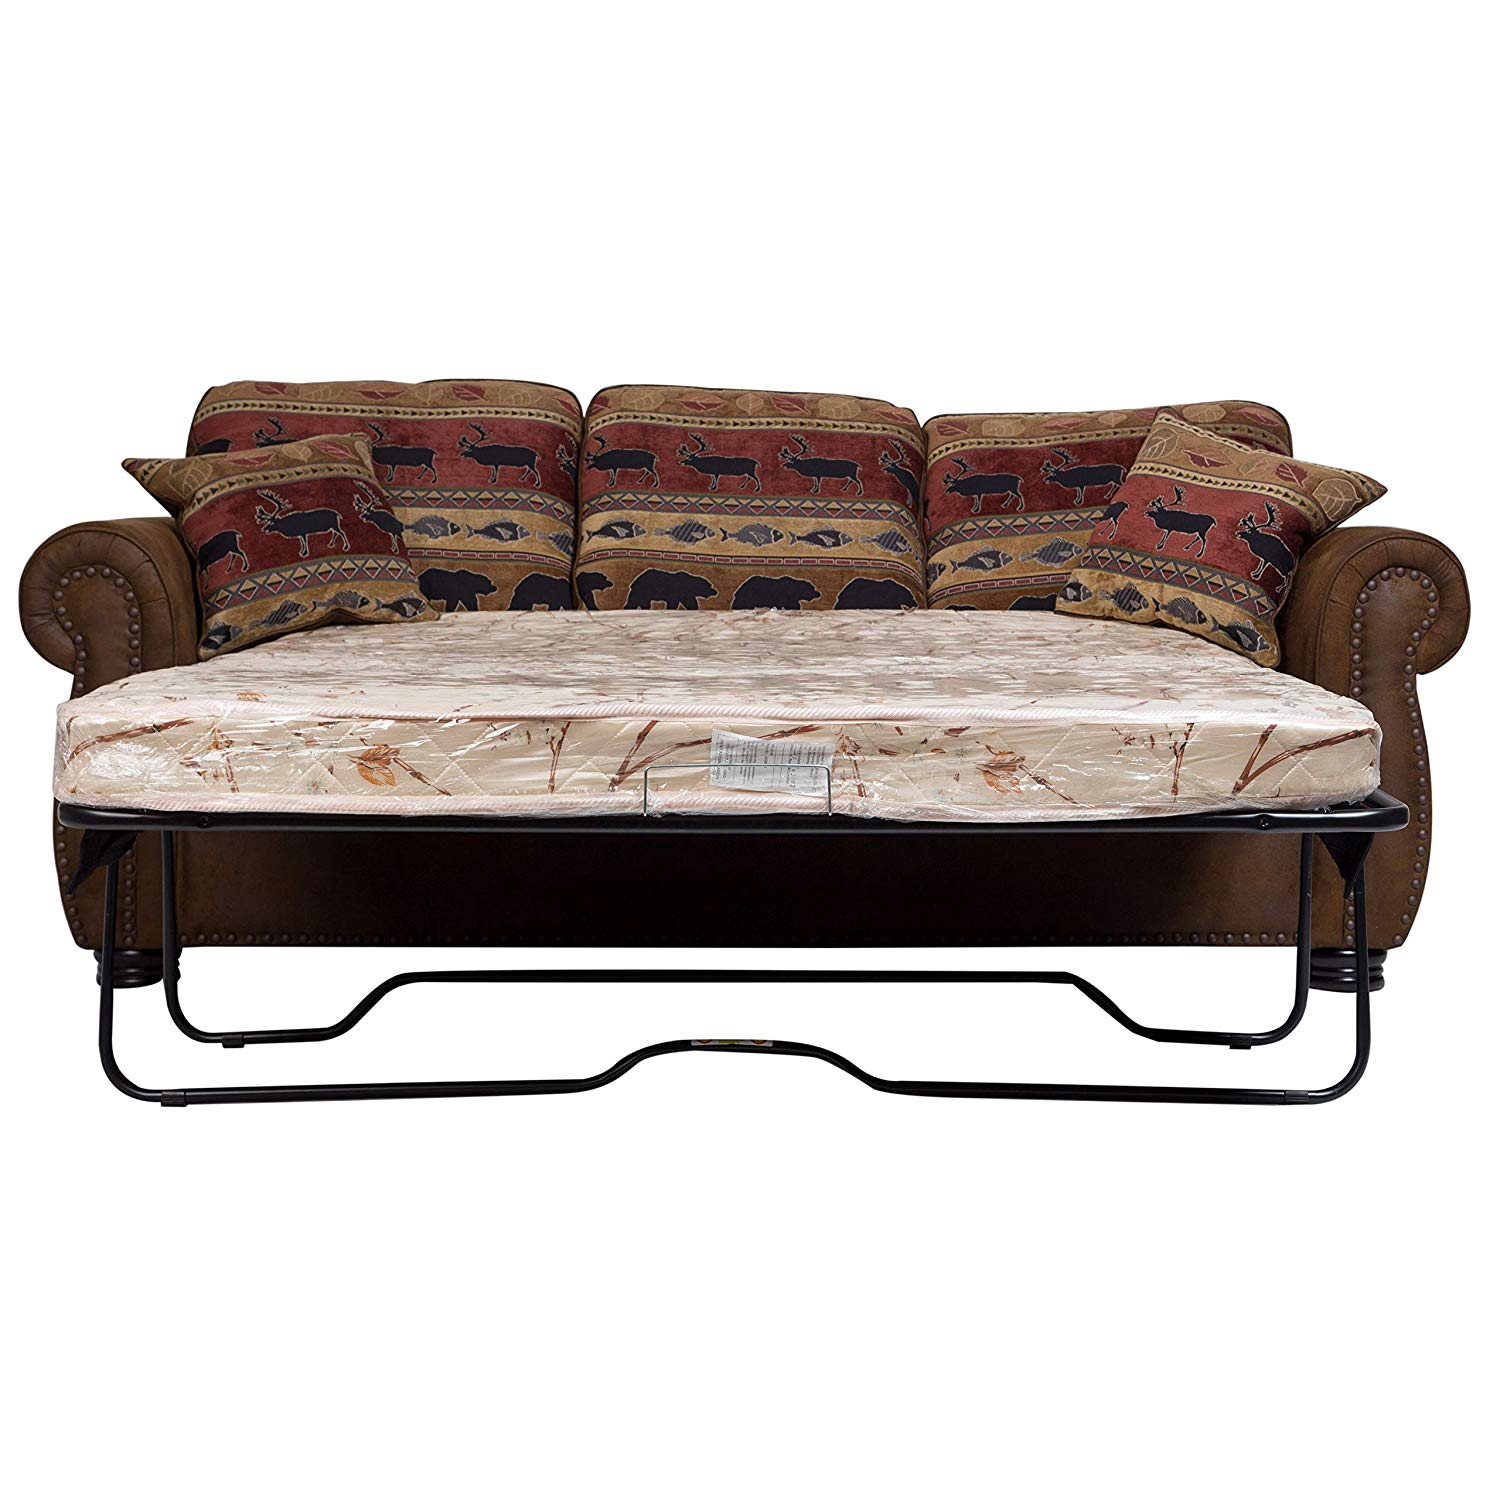 Get Quotations Barrister Modern Grey Velvet Sofa Leather Chesterfield Couch Century Mid Tufted Style Chooseand